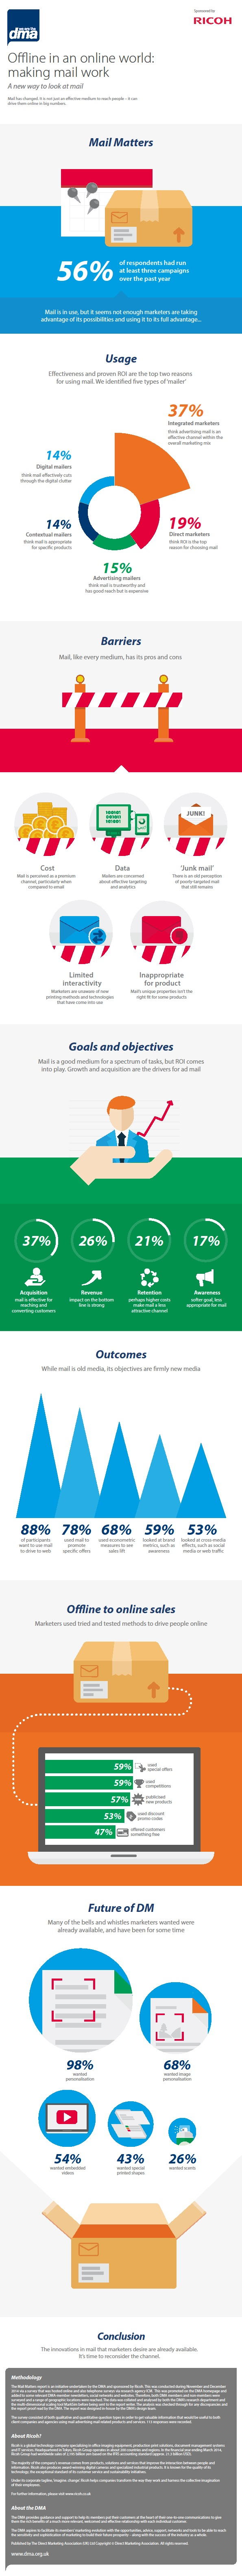 Ricoh-infographic-2015%20copy%20%285%29.jpg